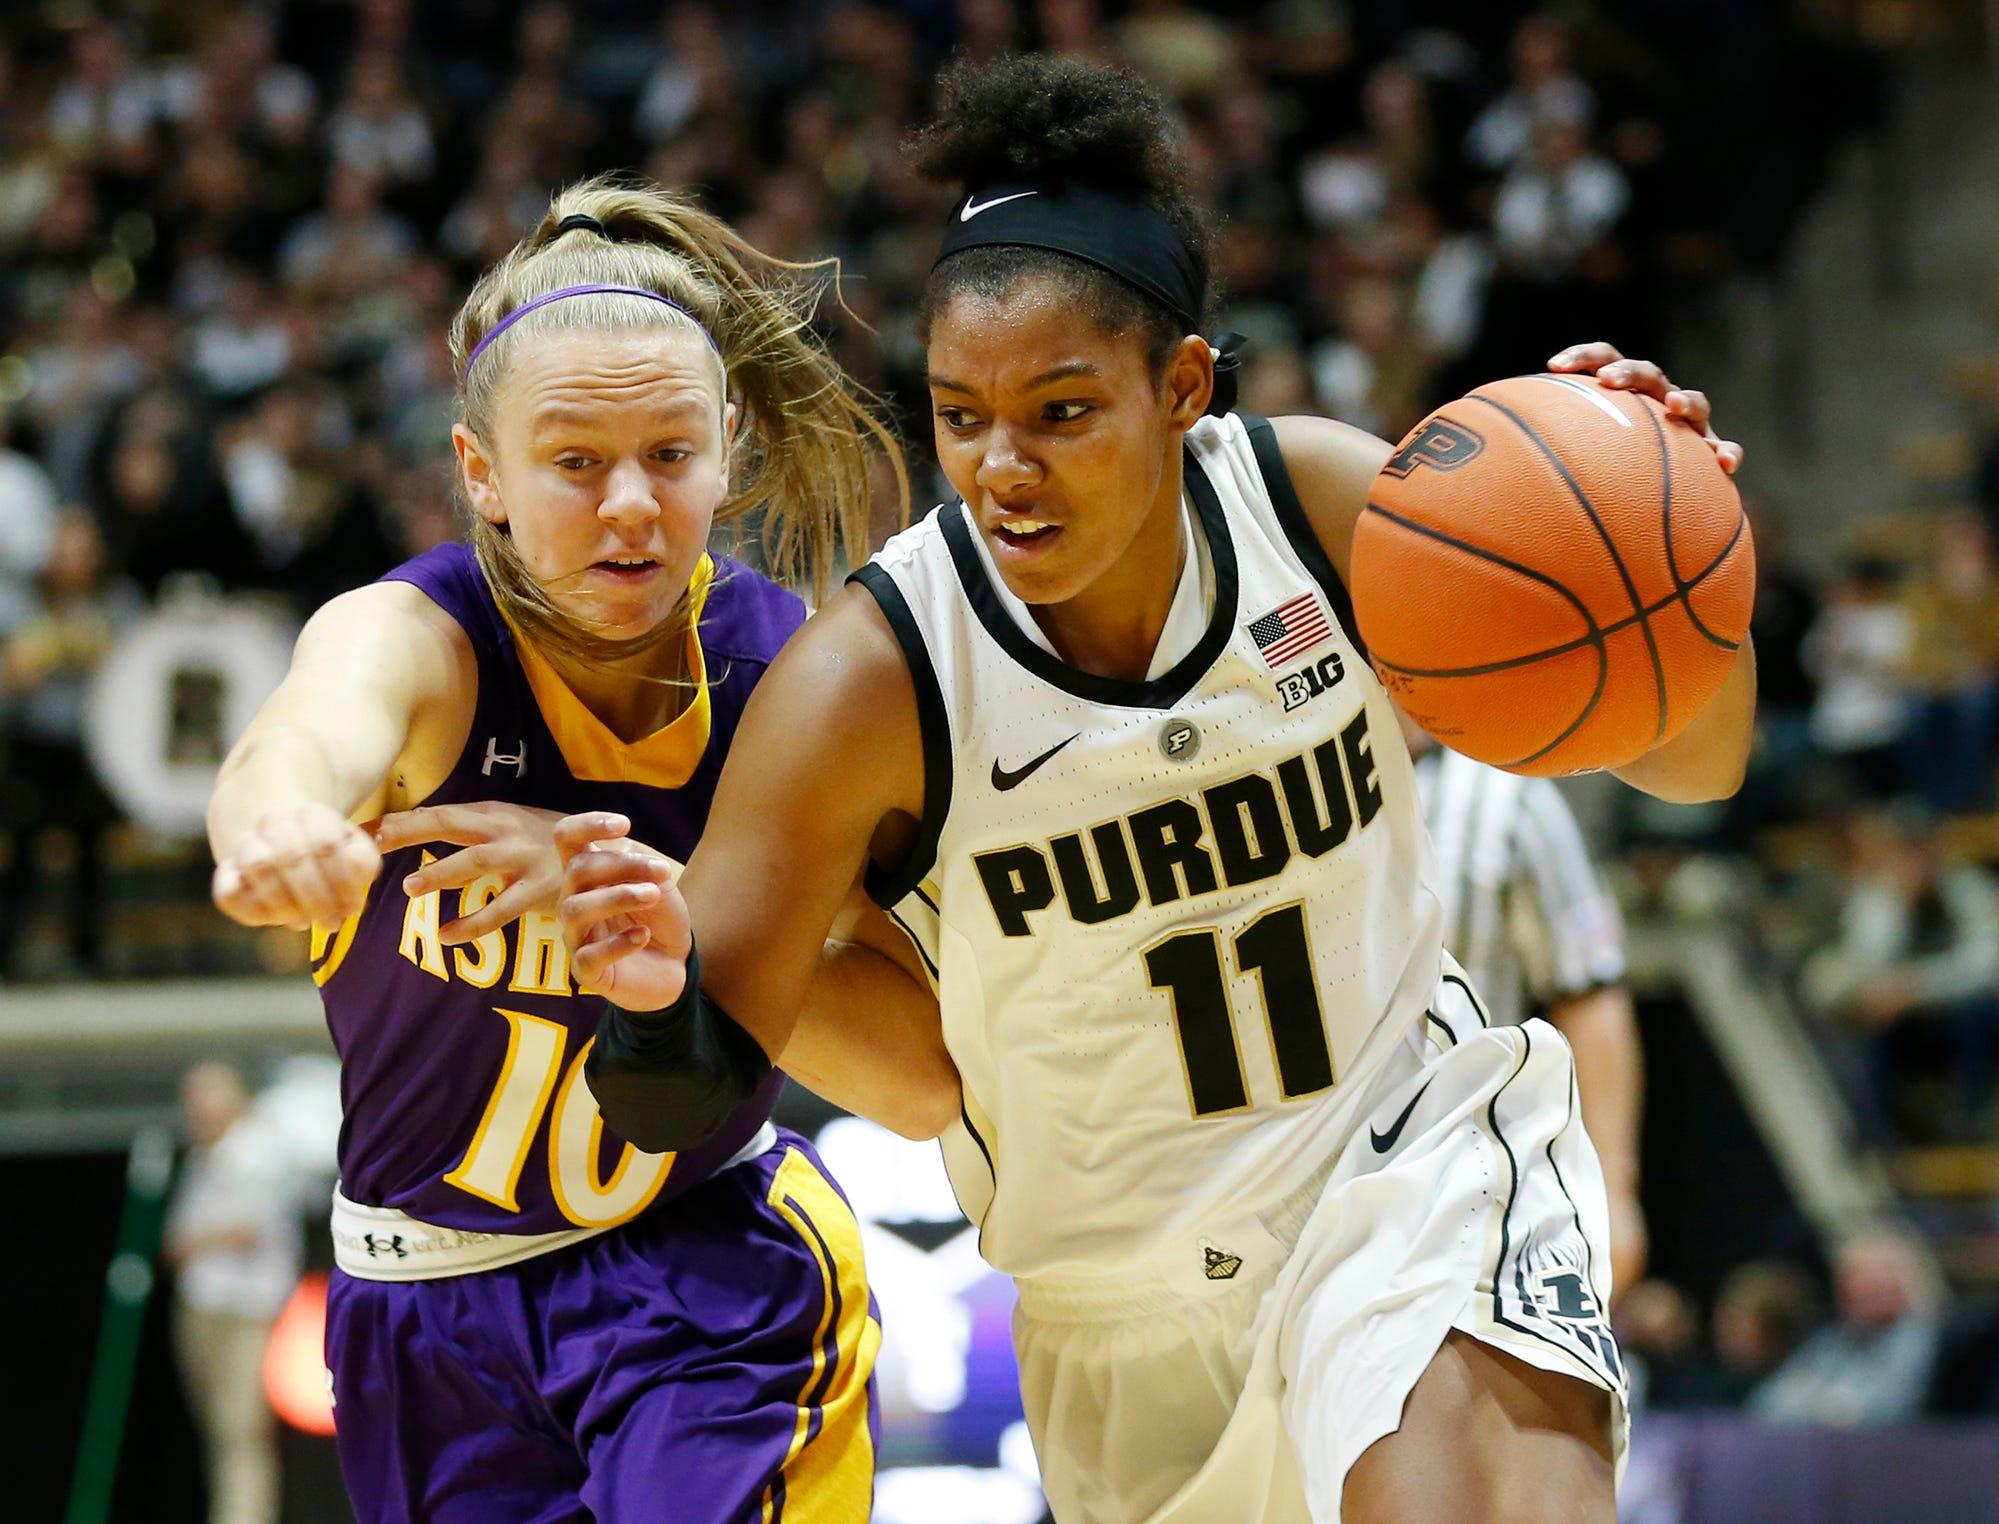 Dominique Oden of Purdue with a drive to the basket against Hallie Heidemann of Ashland Sunday, November 4, 2018, at Mackey Arena. Purdue defeated Ashland 85-69.